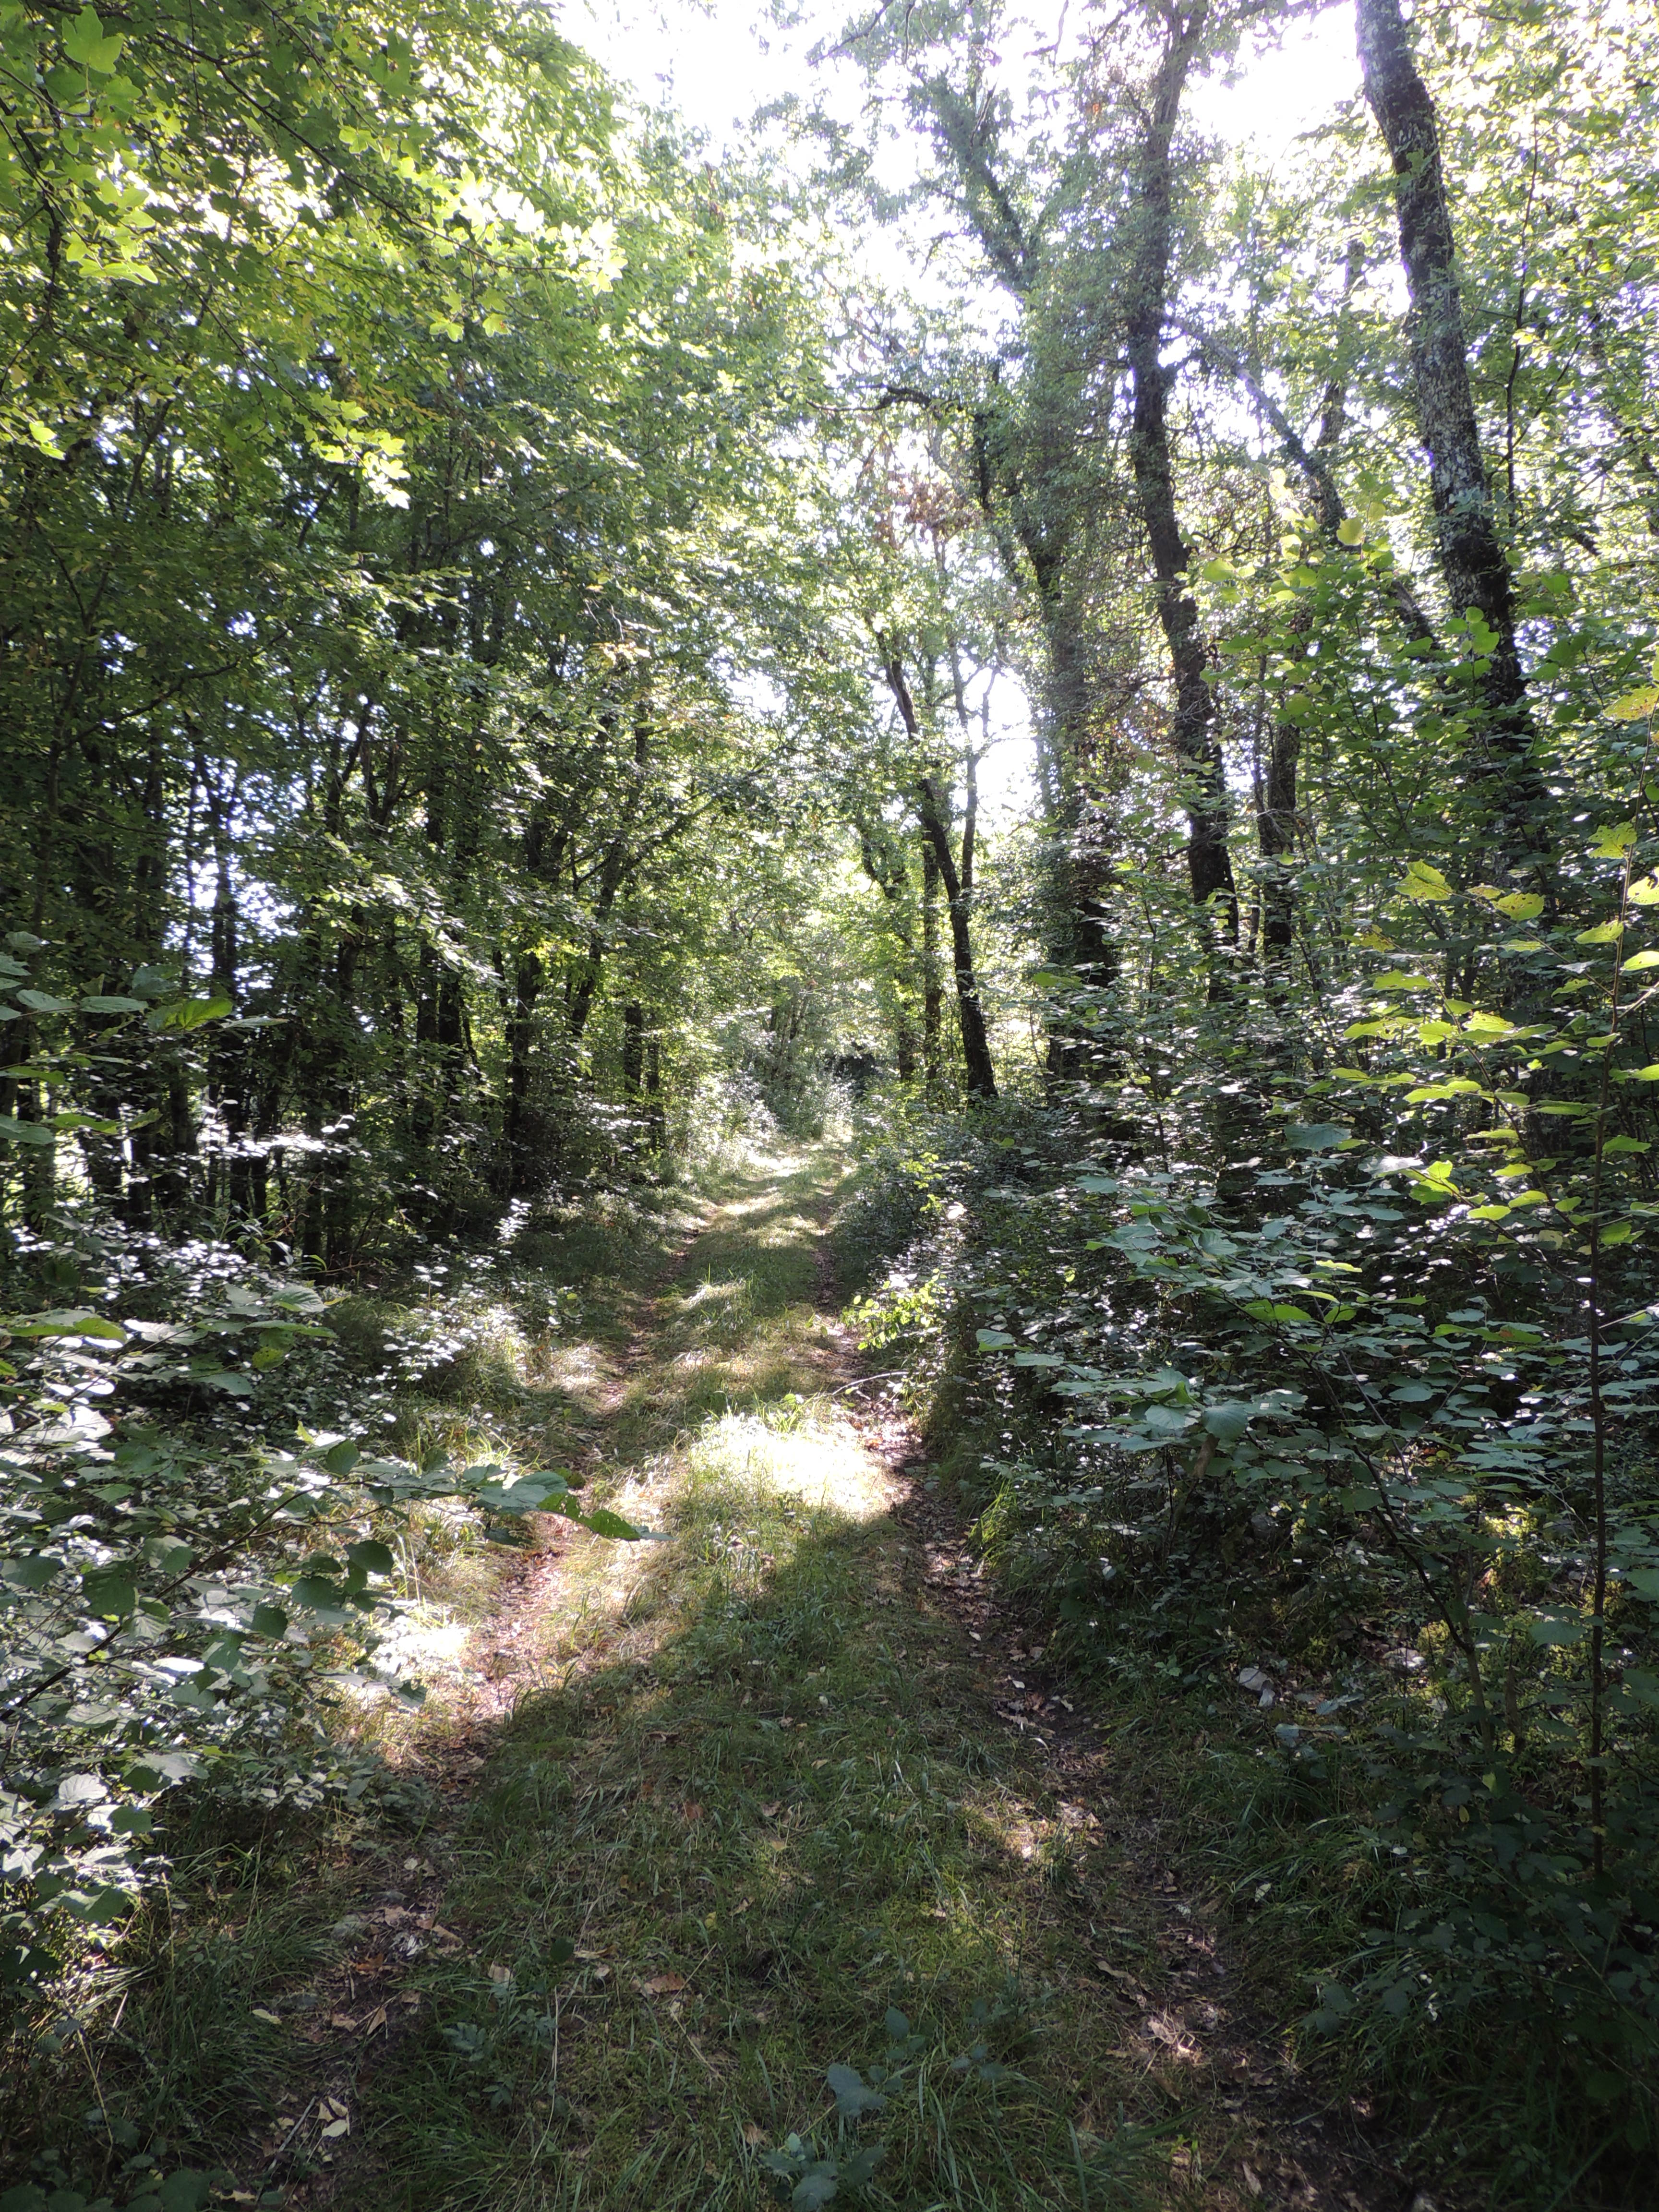 LF – forest path